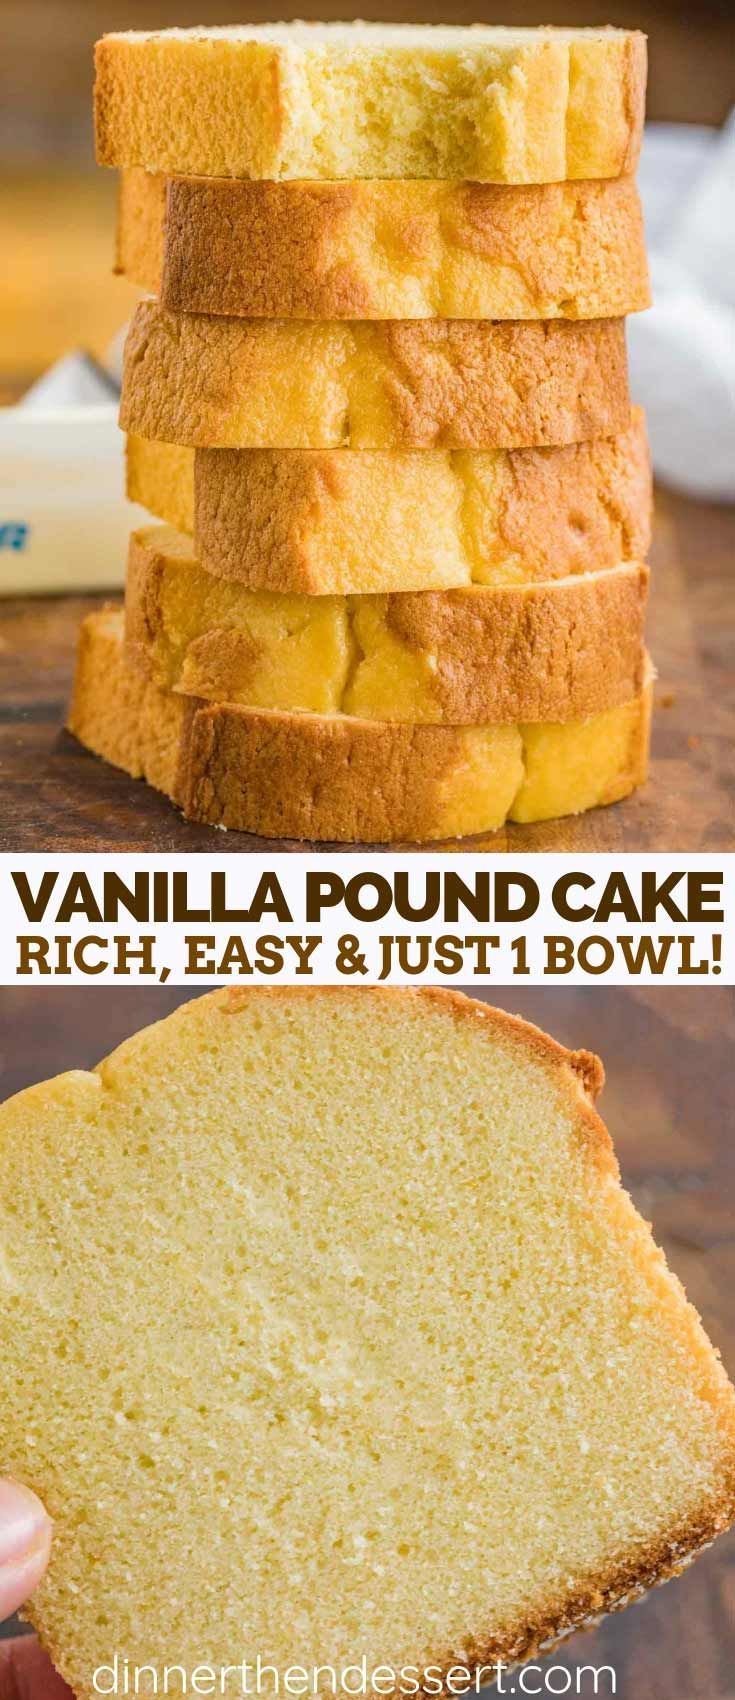 Vanilla Pound Cake is a classic recipe that's sweet, dense, and incredibly EASY …